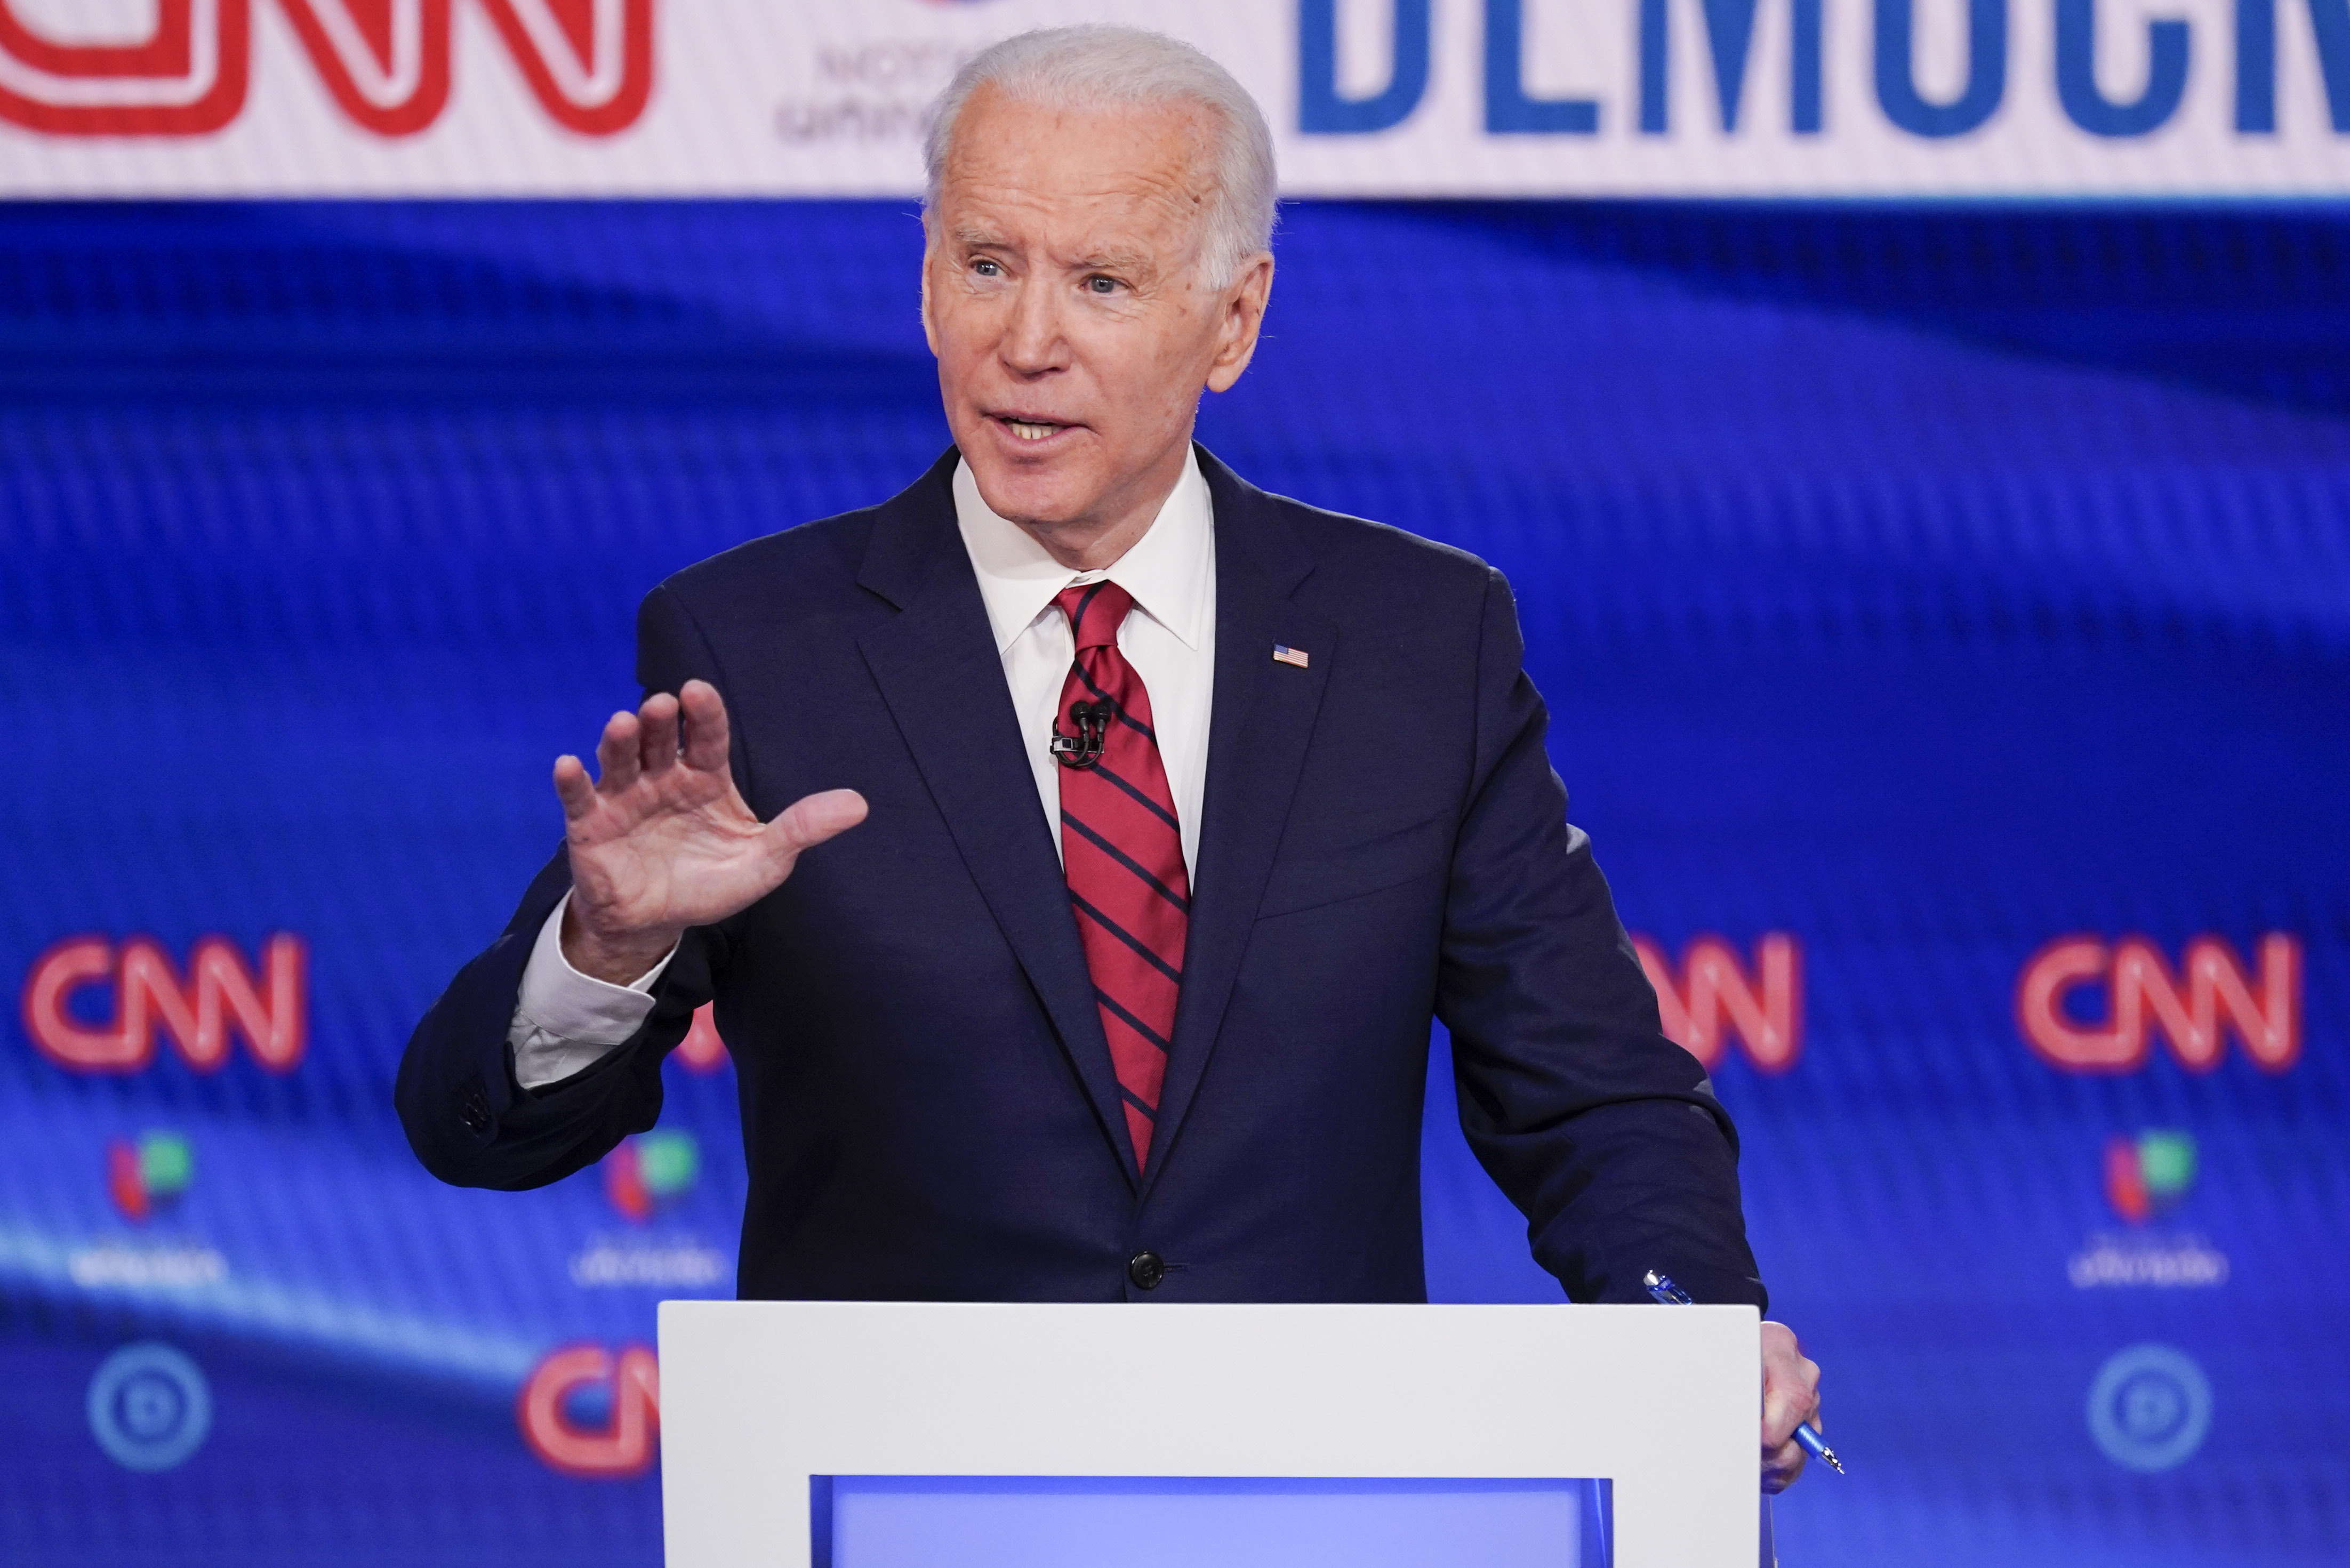 Former Vice President Joe Biden, participates in a Democratic presidential primary debate at CNN Studios in Washington, on March 15, 2020.